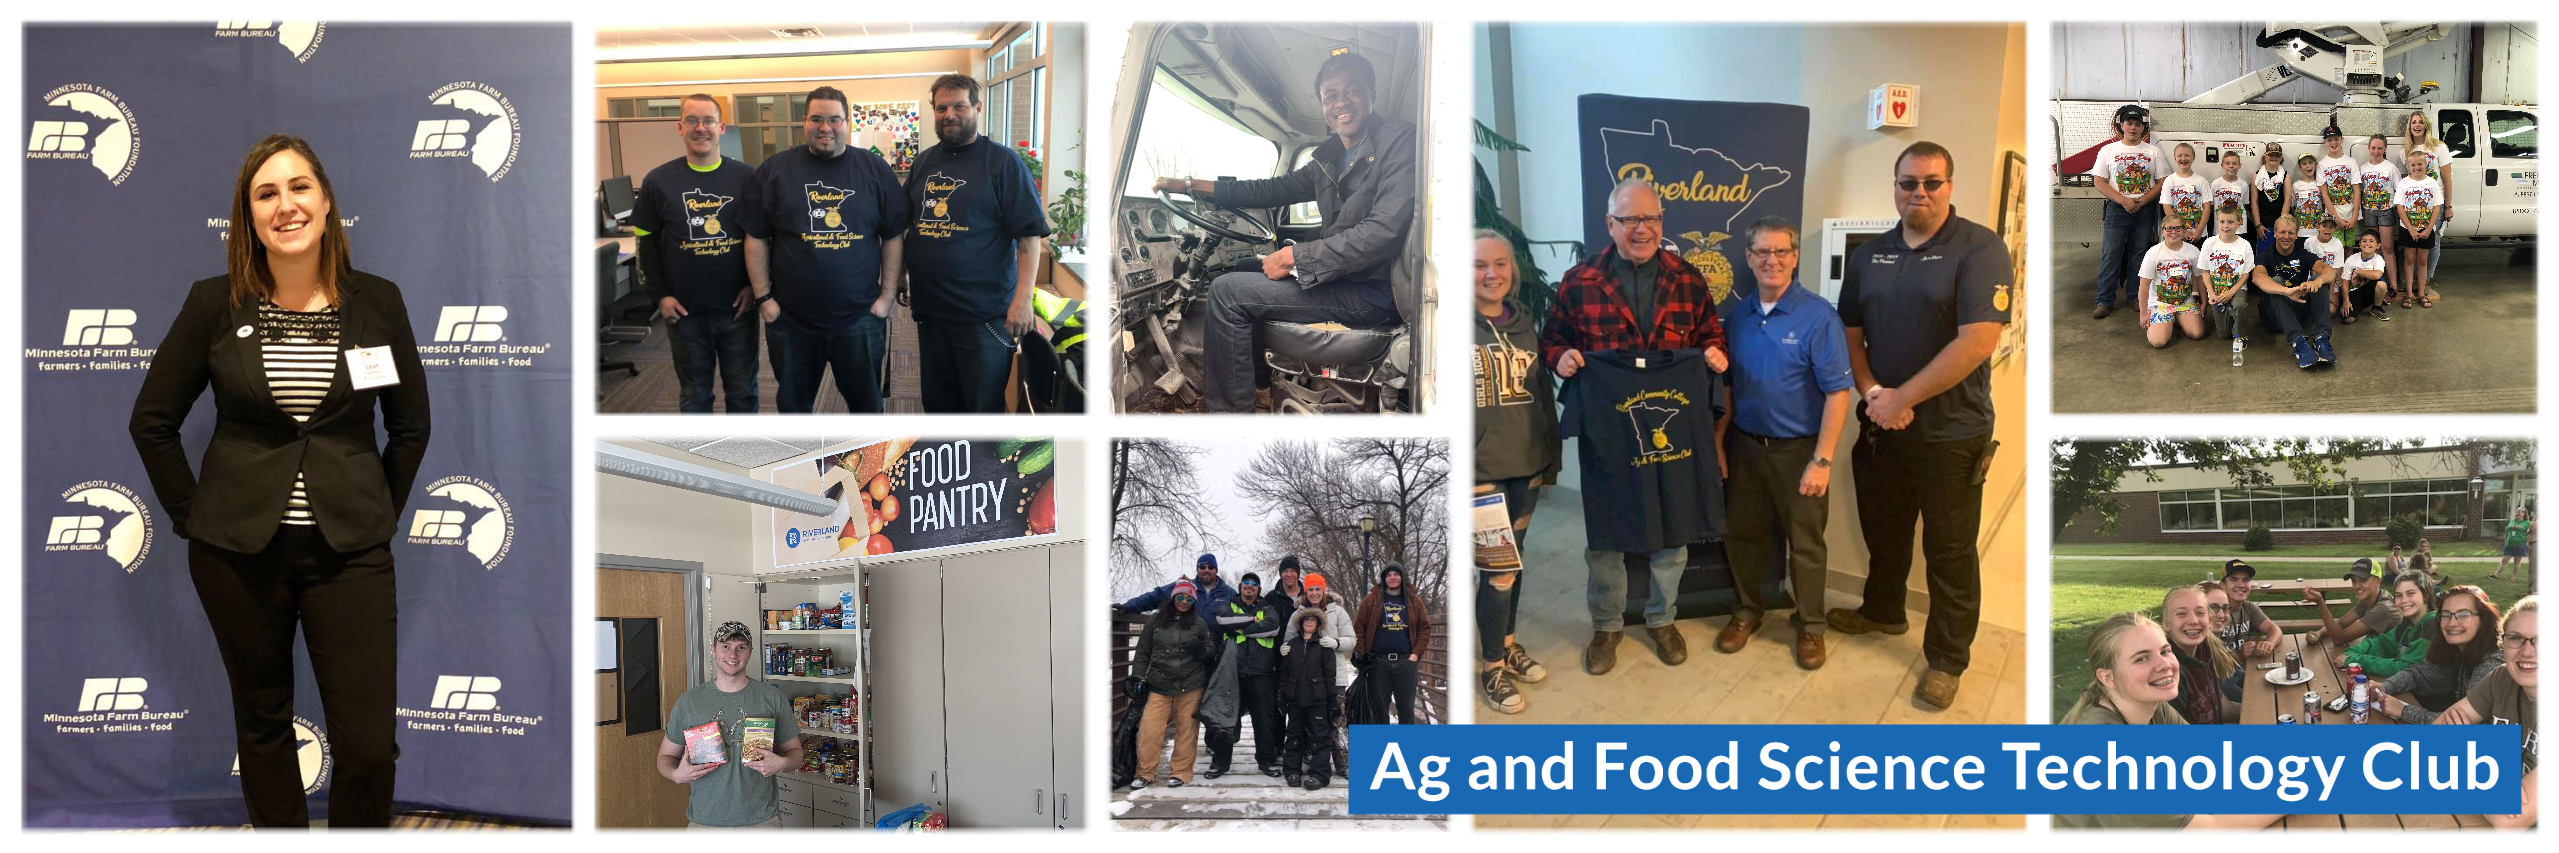 Ag Club Header Collage